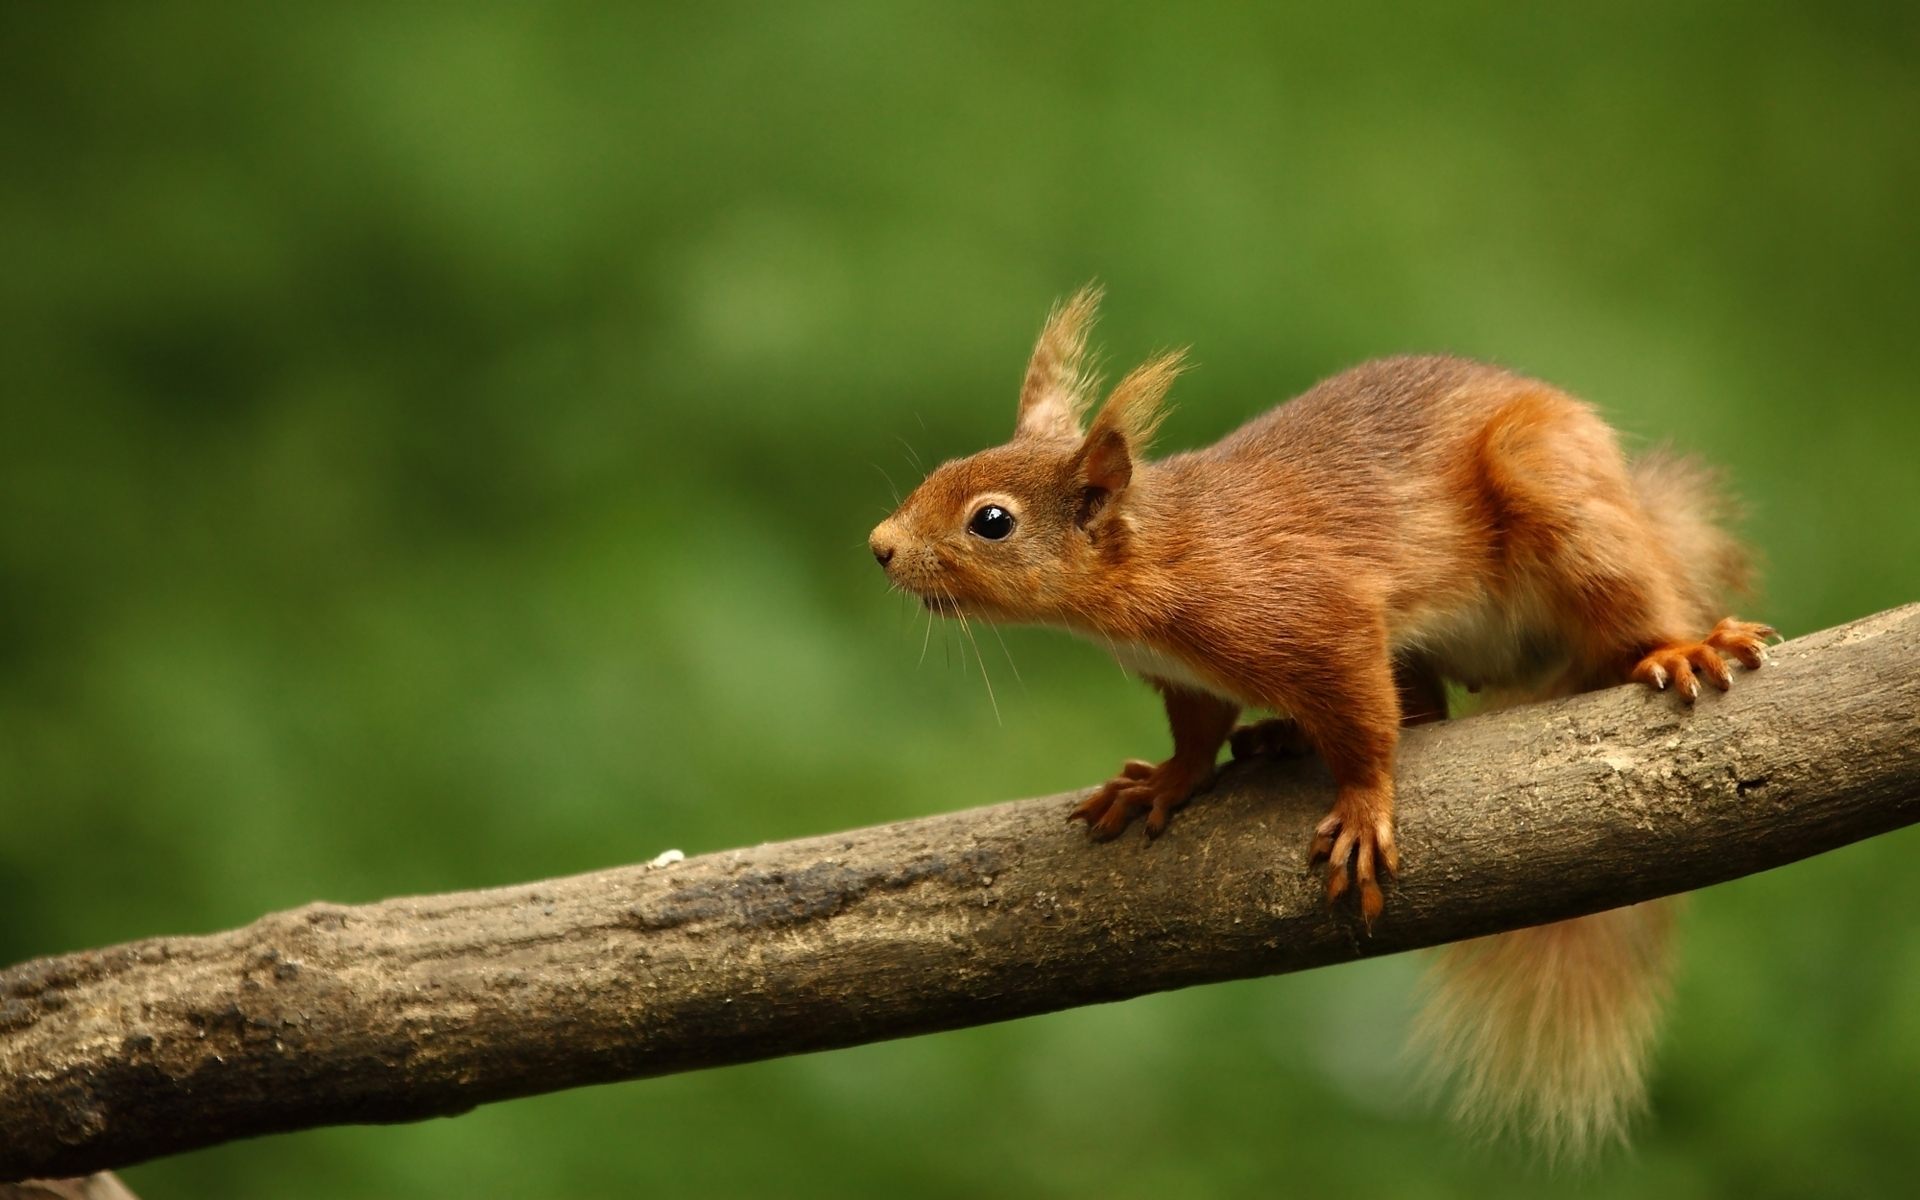 44817 download wallpaper Animals, Squirrel screensavers and pictures for free